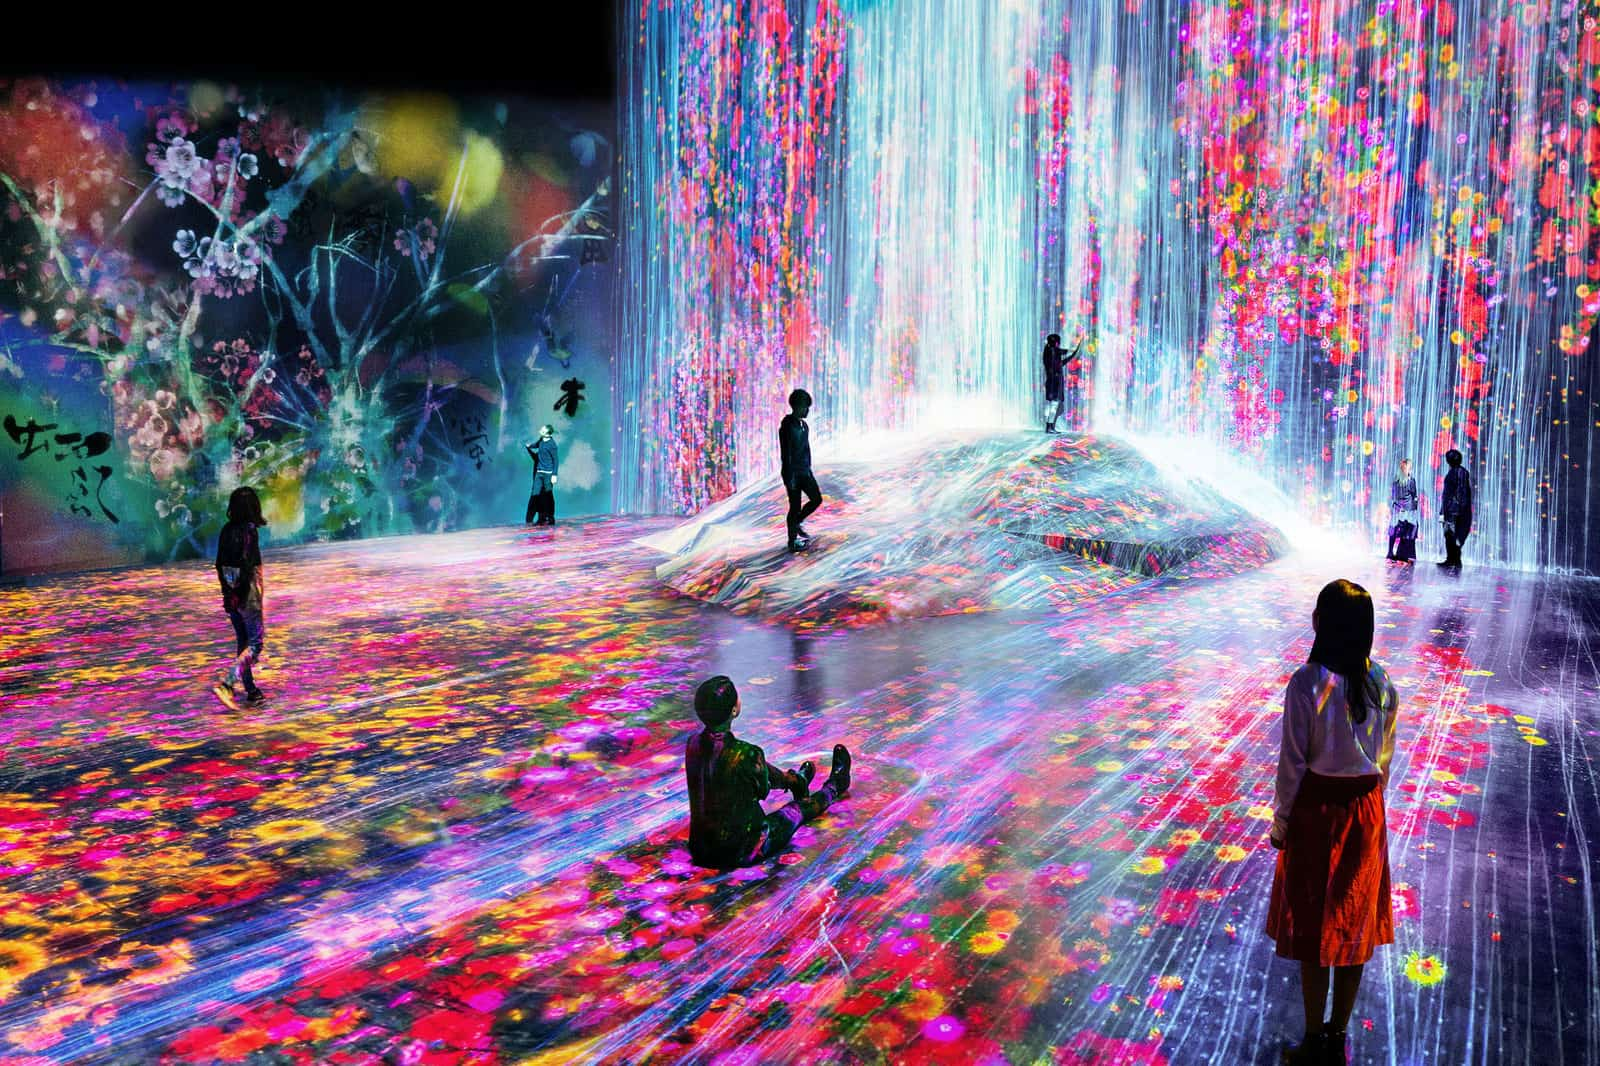 teamLab, Universe of Water Particles in the Tank, Transcending Boundaries 2019, Interactive Digital Environment, Copyright teamLab, Image Courtesy PACE Gallery / Superblue